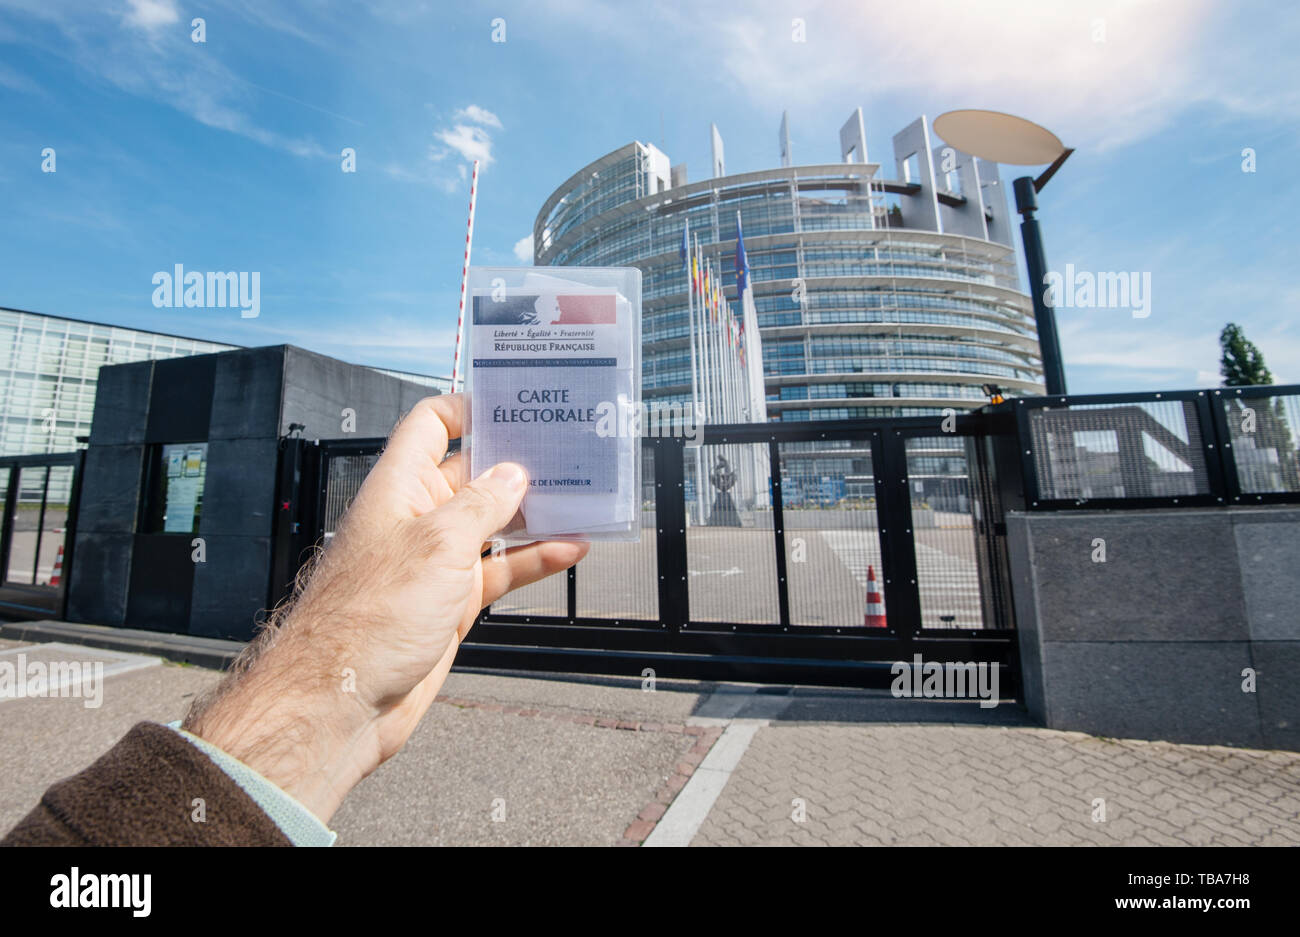 Strasbourg, France - May 26, 2019: man hand holding Voter's car French Carte Electorale at the entrance of European Parliament headquarter building with all flags on the 2019 European Parliament election day - Stock Image